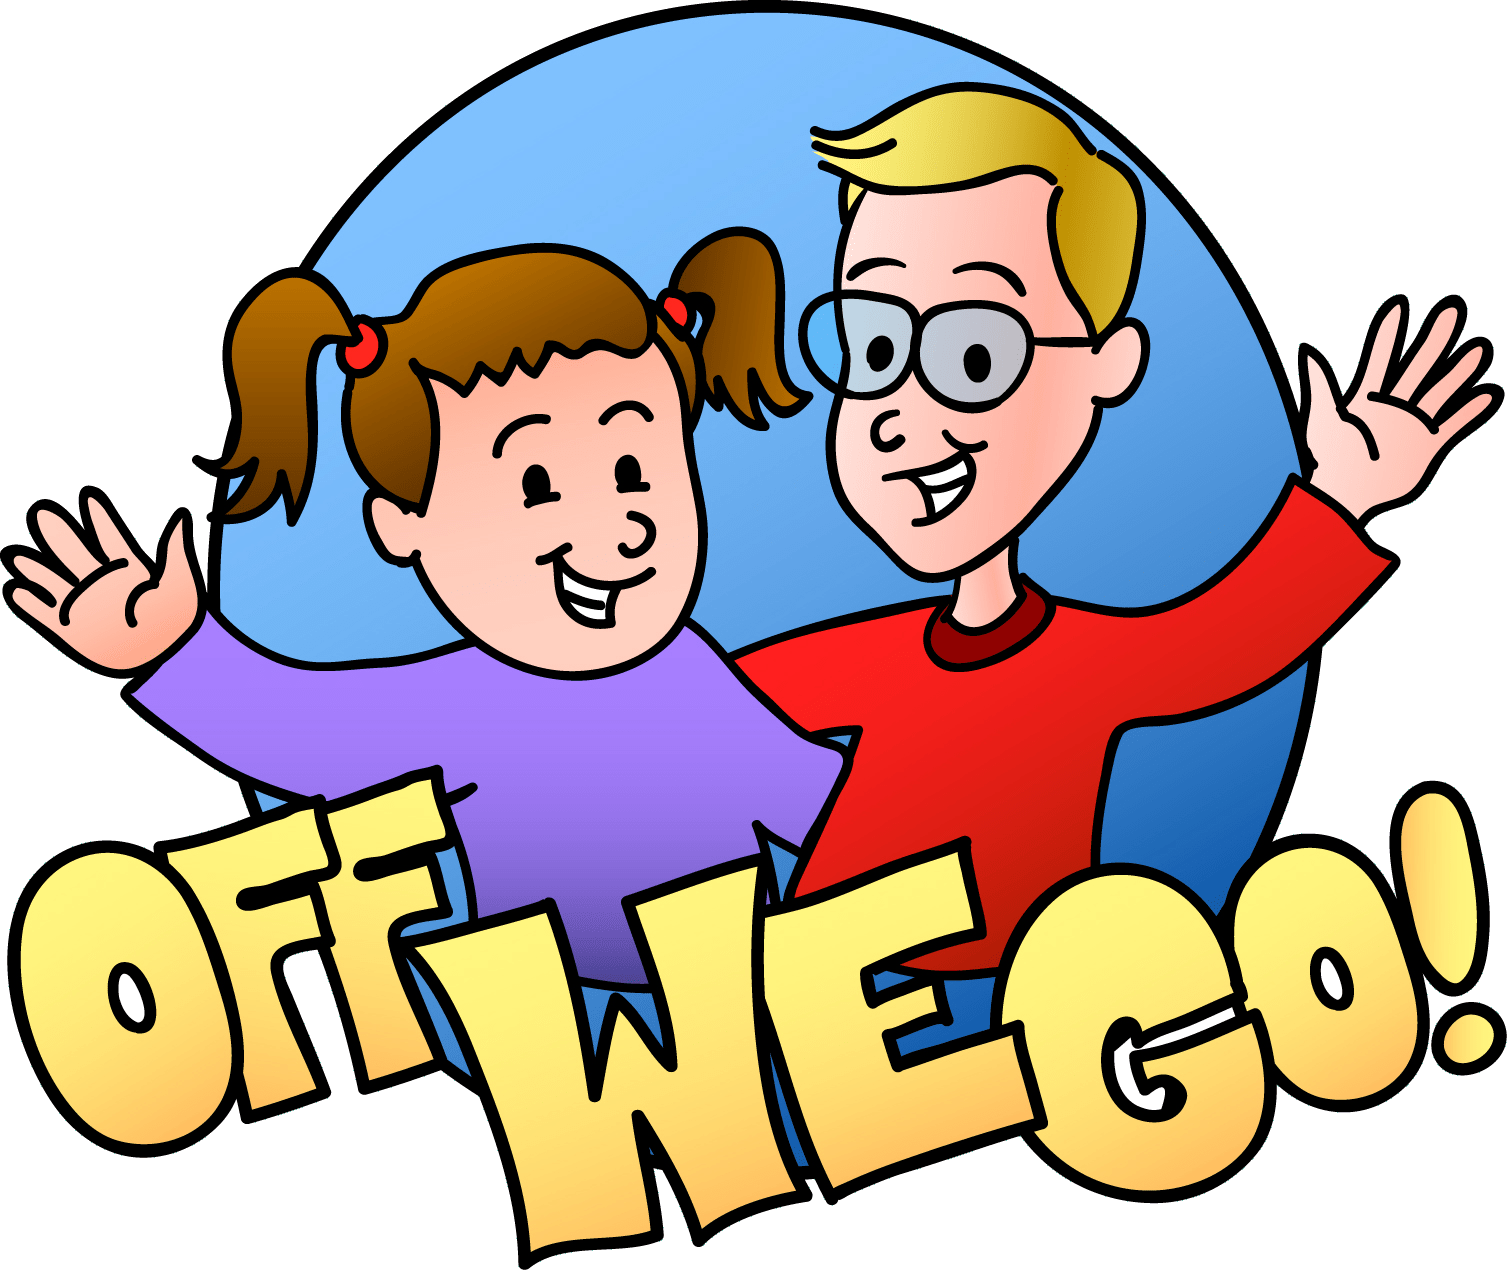 off-we-go-logo2121.png